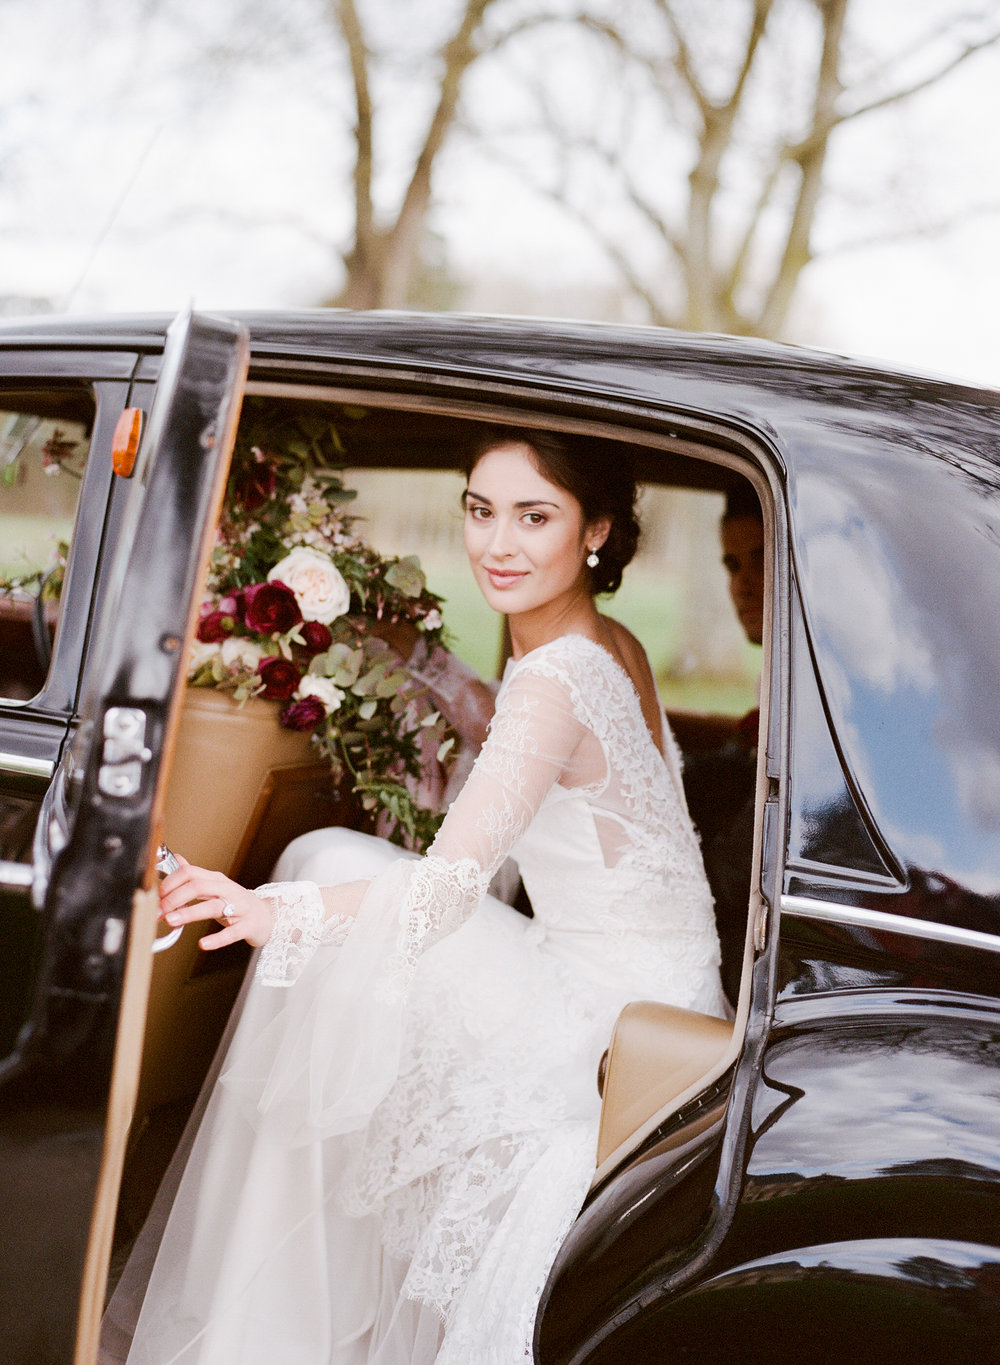 A bride gets into a vintage car after her wedding in Burgundy, France; Sylvie Gil Photography